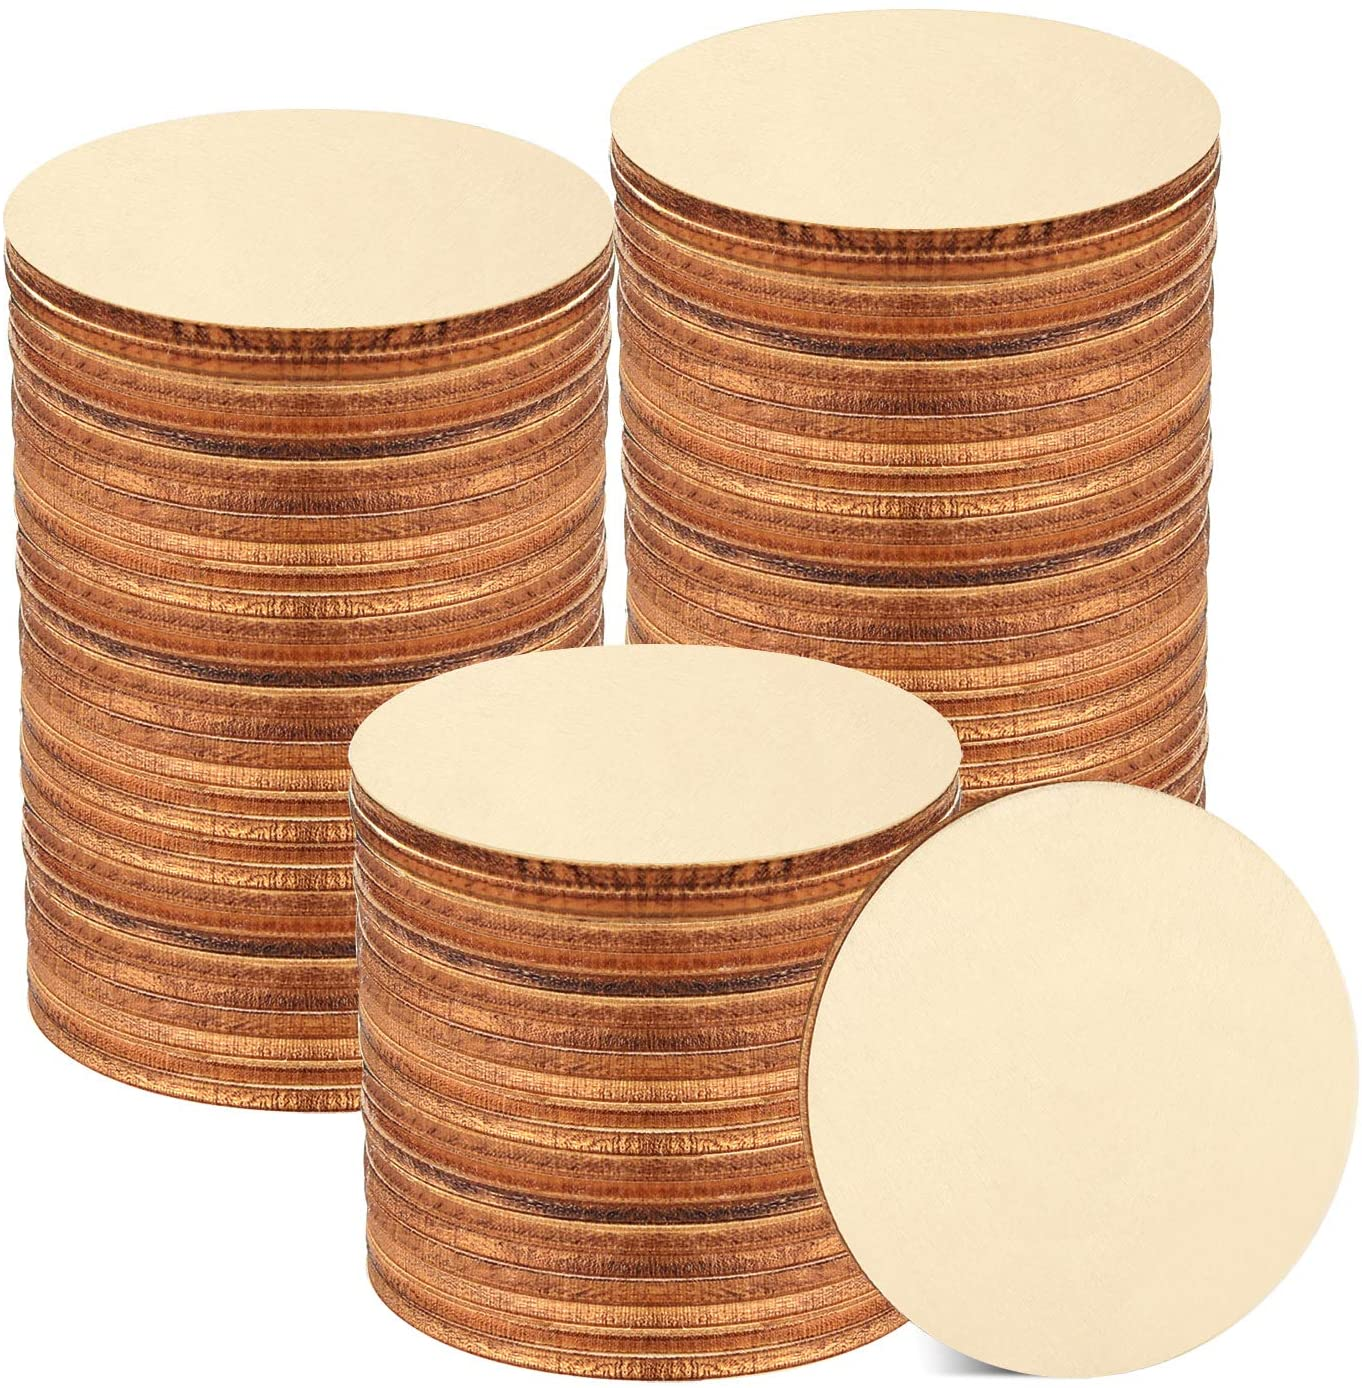 Coopay 120 Pieces 2 Inch Wooden Circles, Unfinished Round Wood Slices Natural Wooden Cutouts for Door Hanger, Painting, Wedding, Home Decoration DIY Wood Craft Supplies